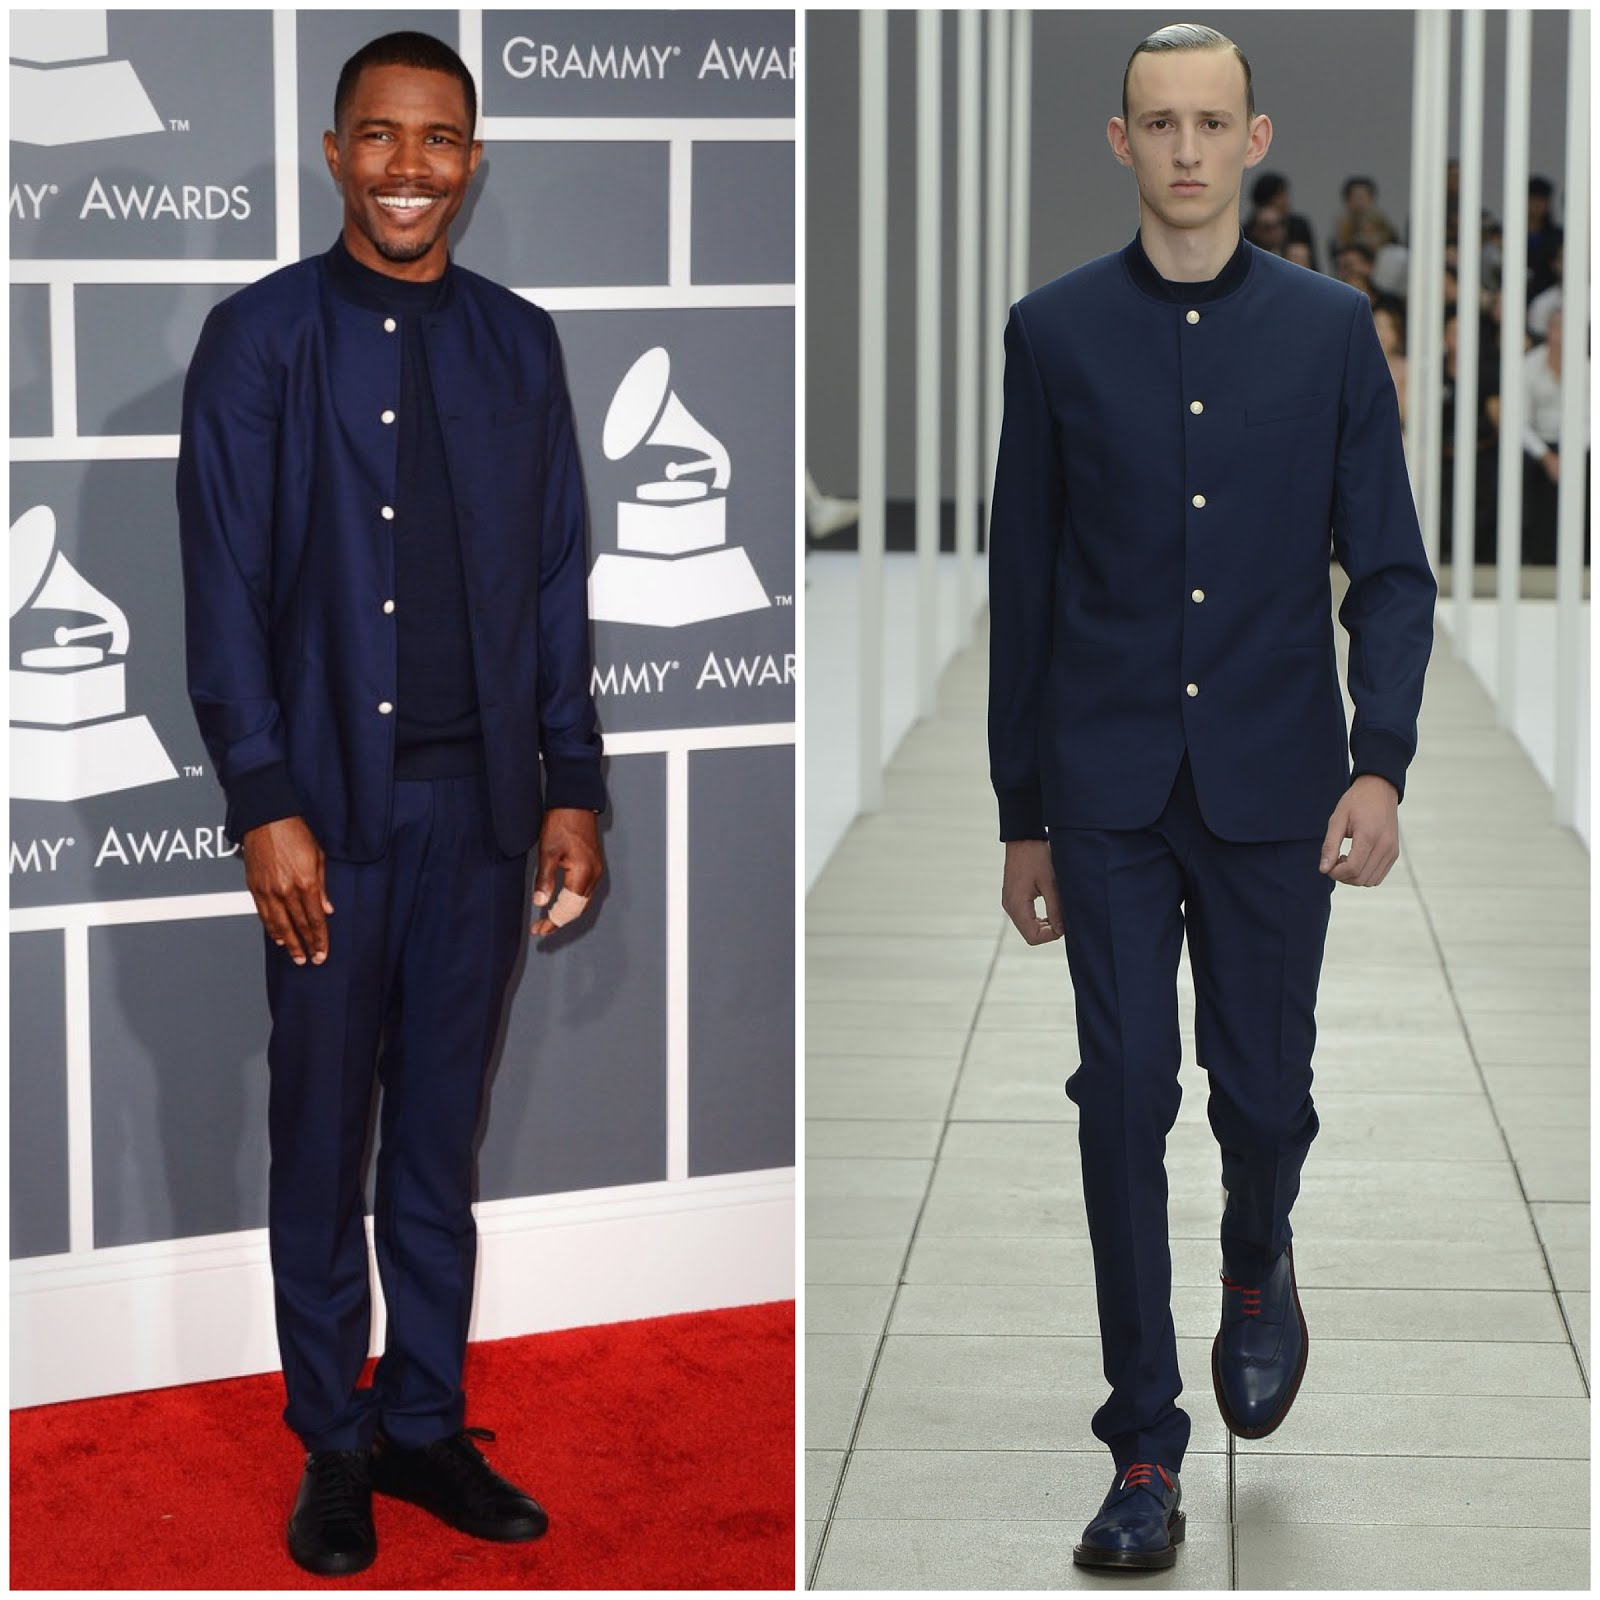 00O00 Menswear Blog Frank Ocean in Dior Homme Spring Summer 2013 - 55th Annual GRAMMY Awards at Staples Center on February 10, 2013